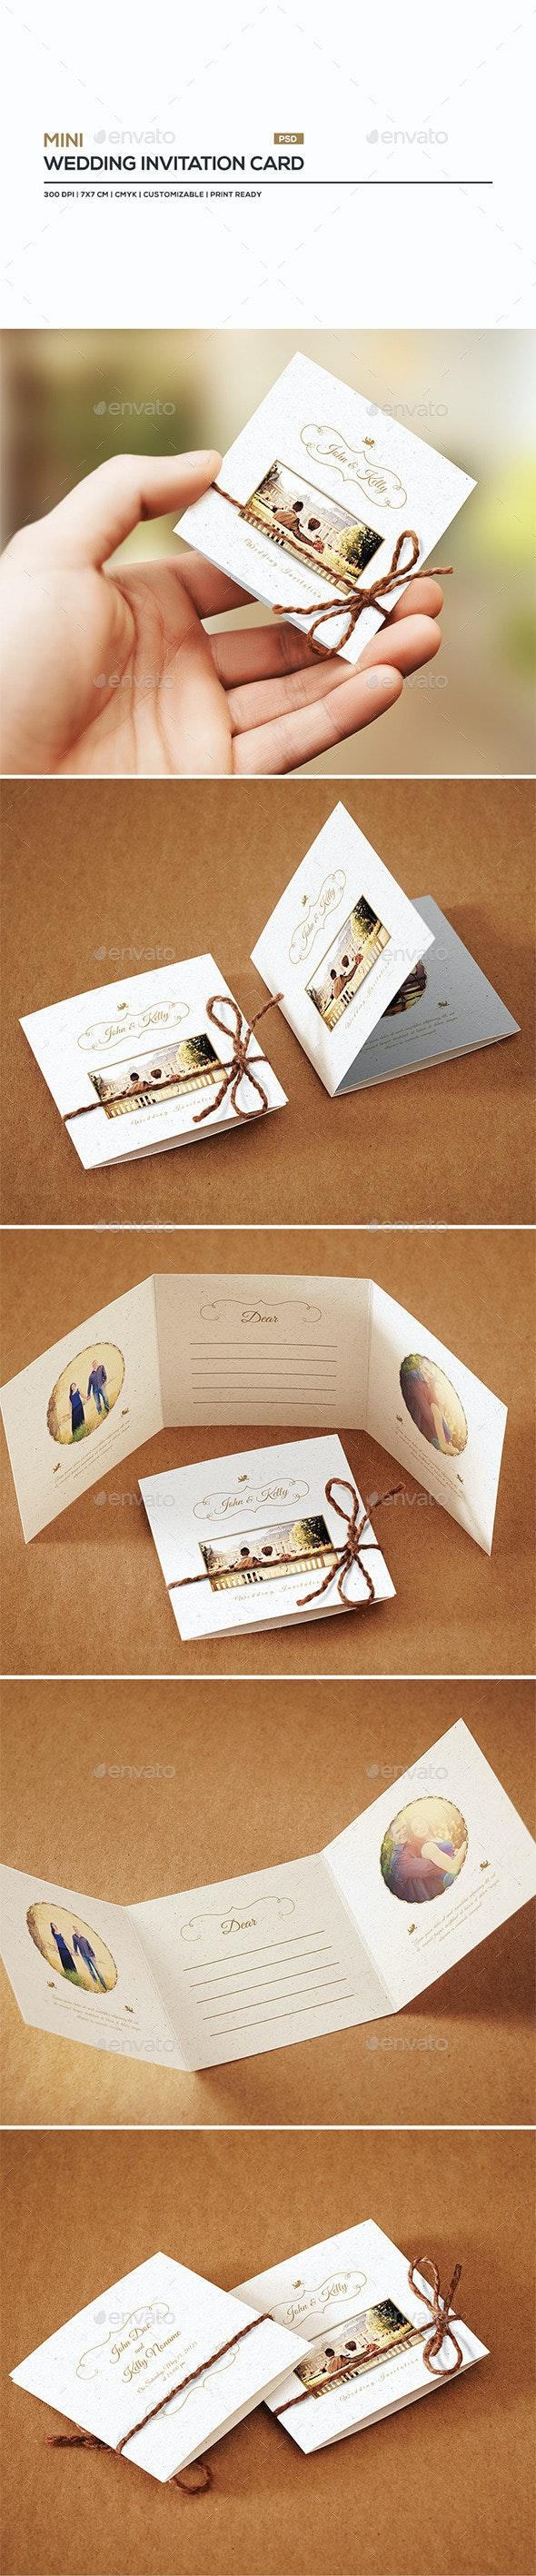 Mini Wedding Invitation Card by ShapShapy  GraphicRiver